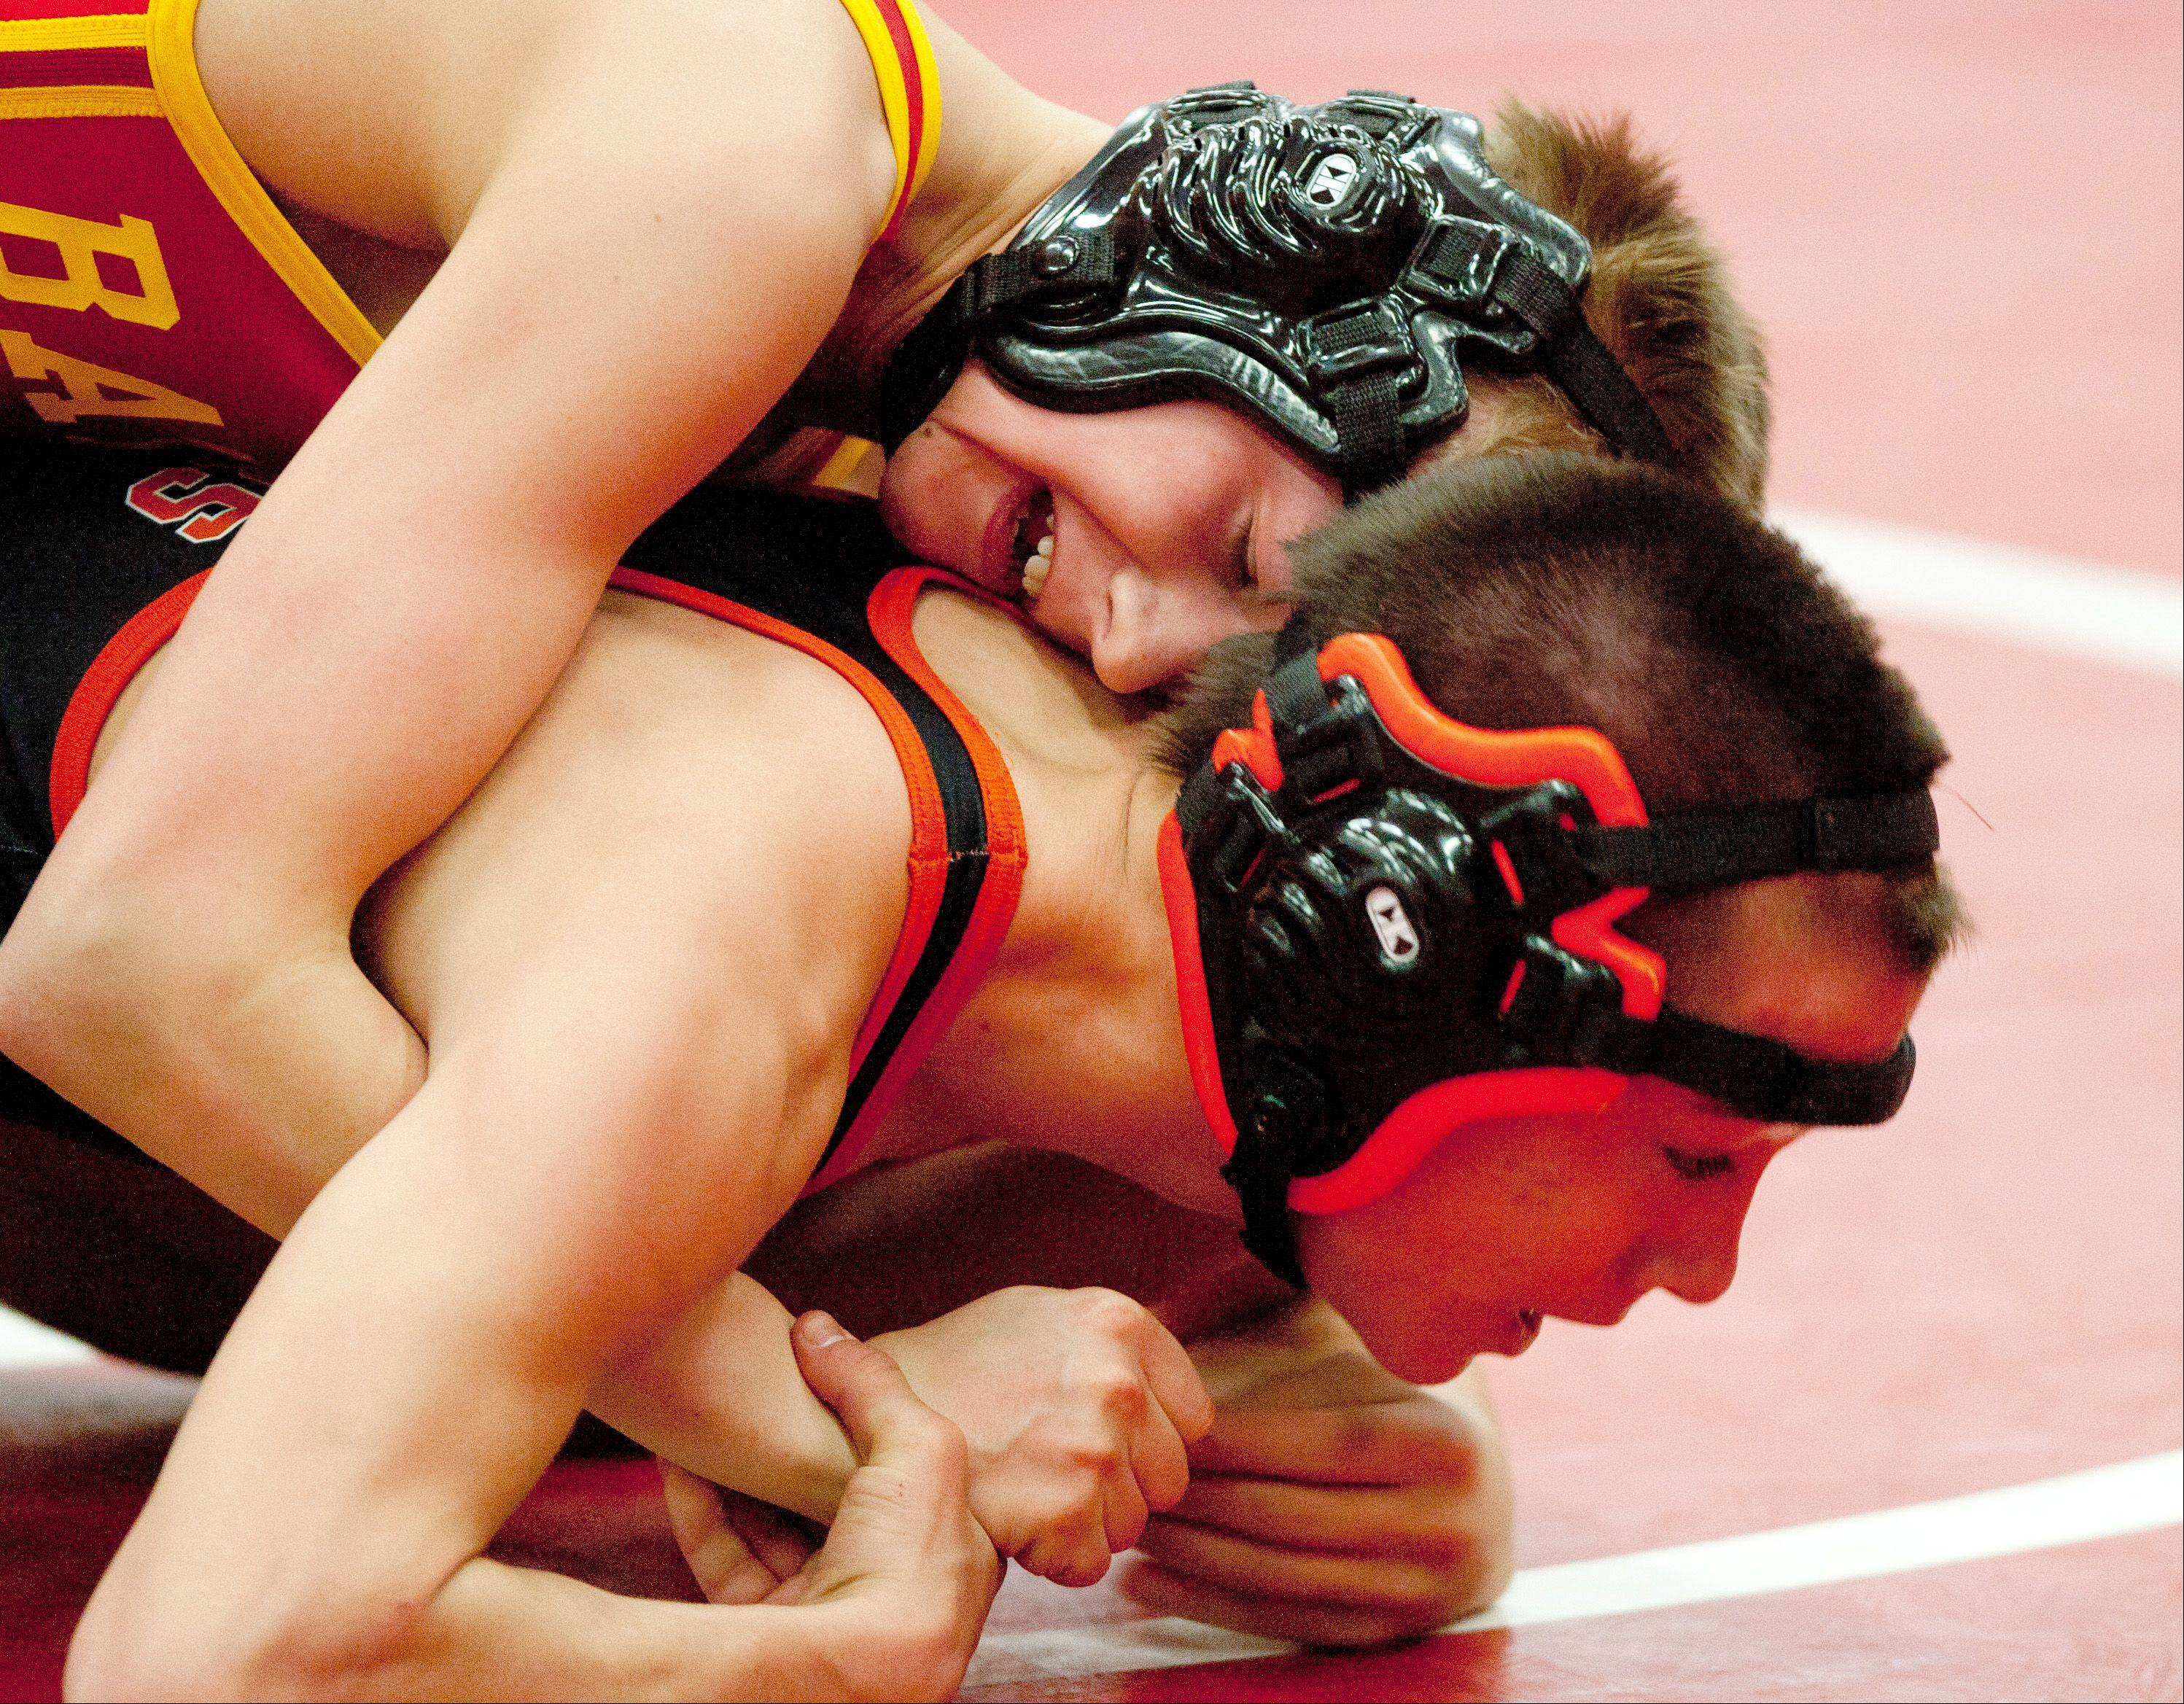 Batavia's Luke Schulz, top, defeats Wheaton Warrenville South' s Aaron Schliesmann 9-2 in the 113-pound class of the Class 3A Naperville Central Wrestling Regional.